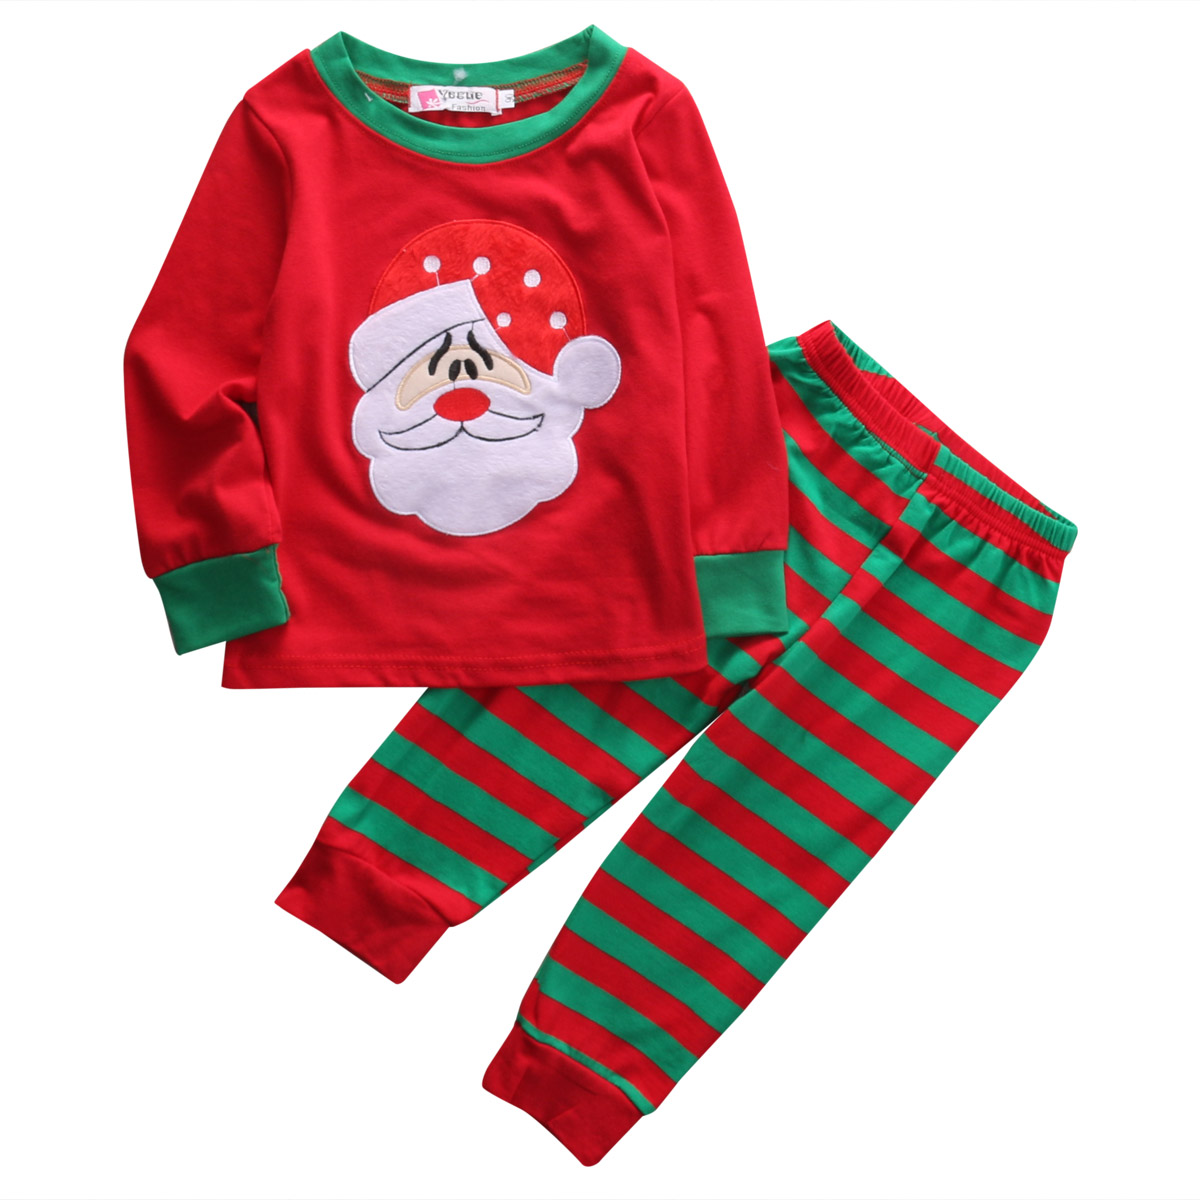 2Pcs Baby Kids Christmas Pjs Clothing Set Baby Boys Girls Xmas T-Shirt Tops + Pants Kids Toddler Clothes Outfit